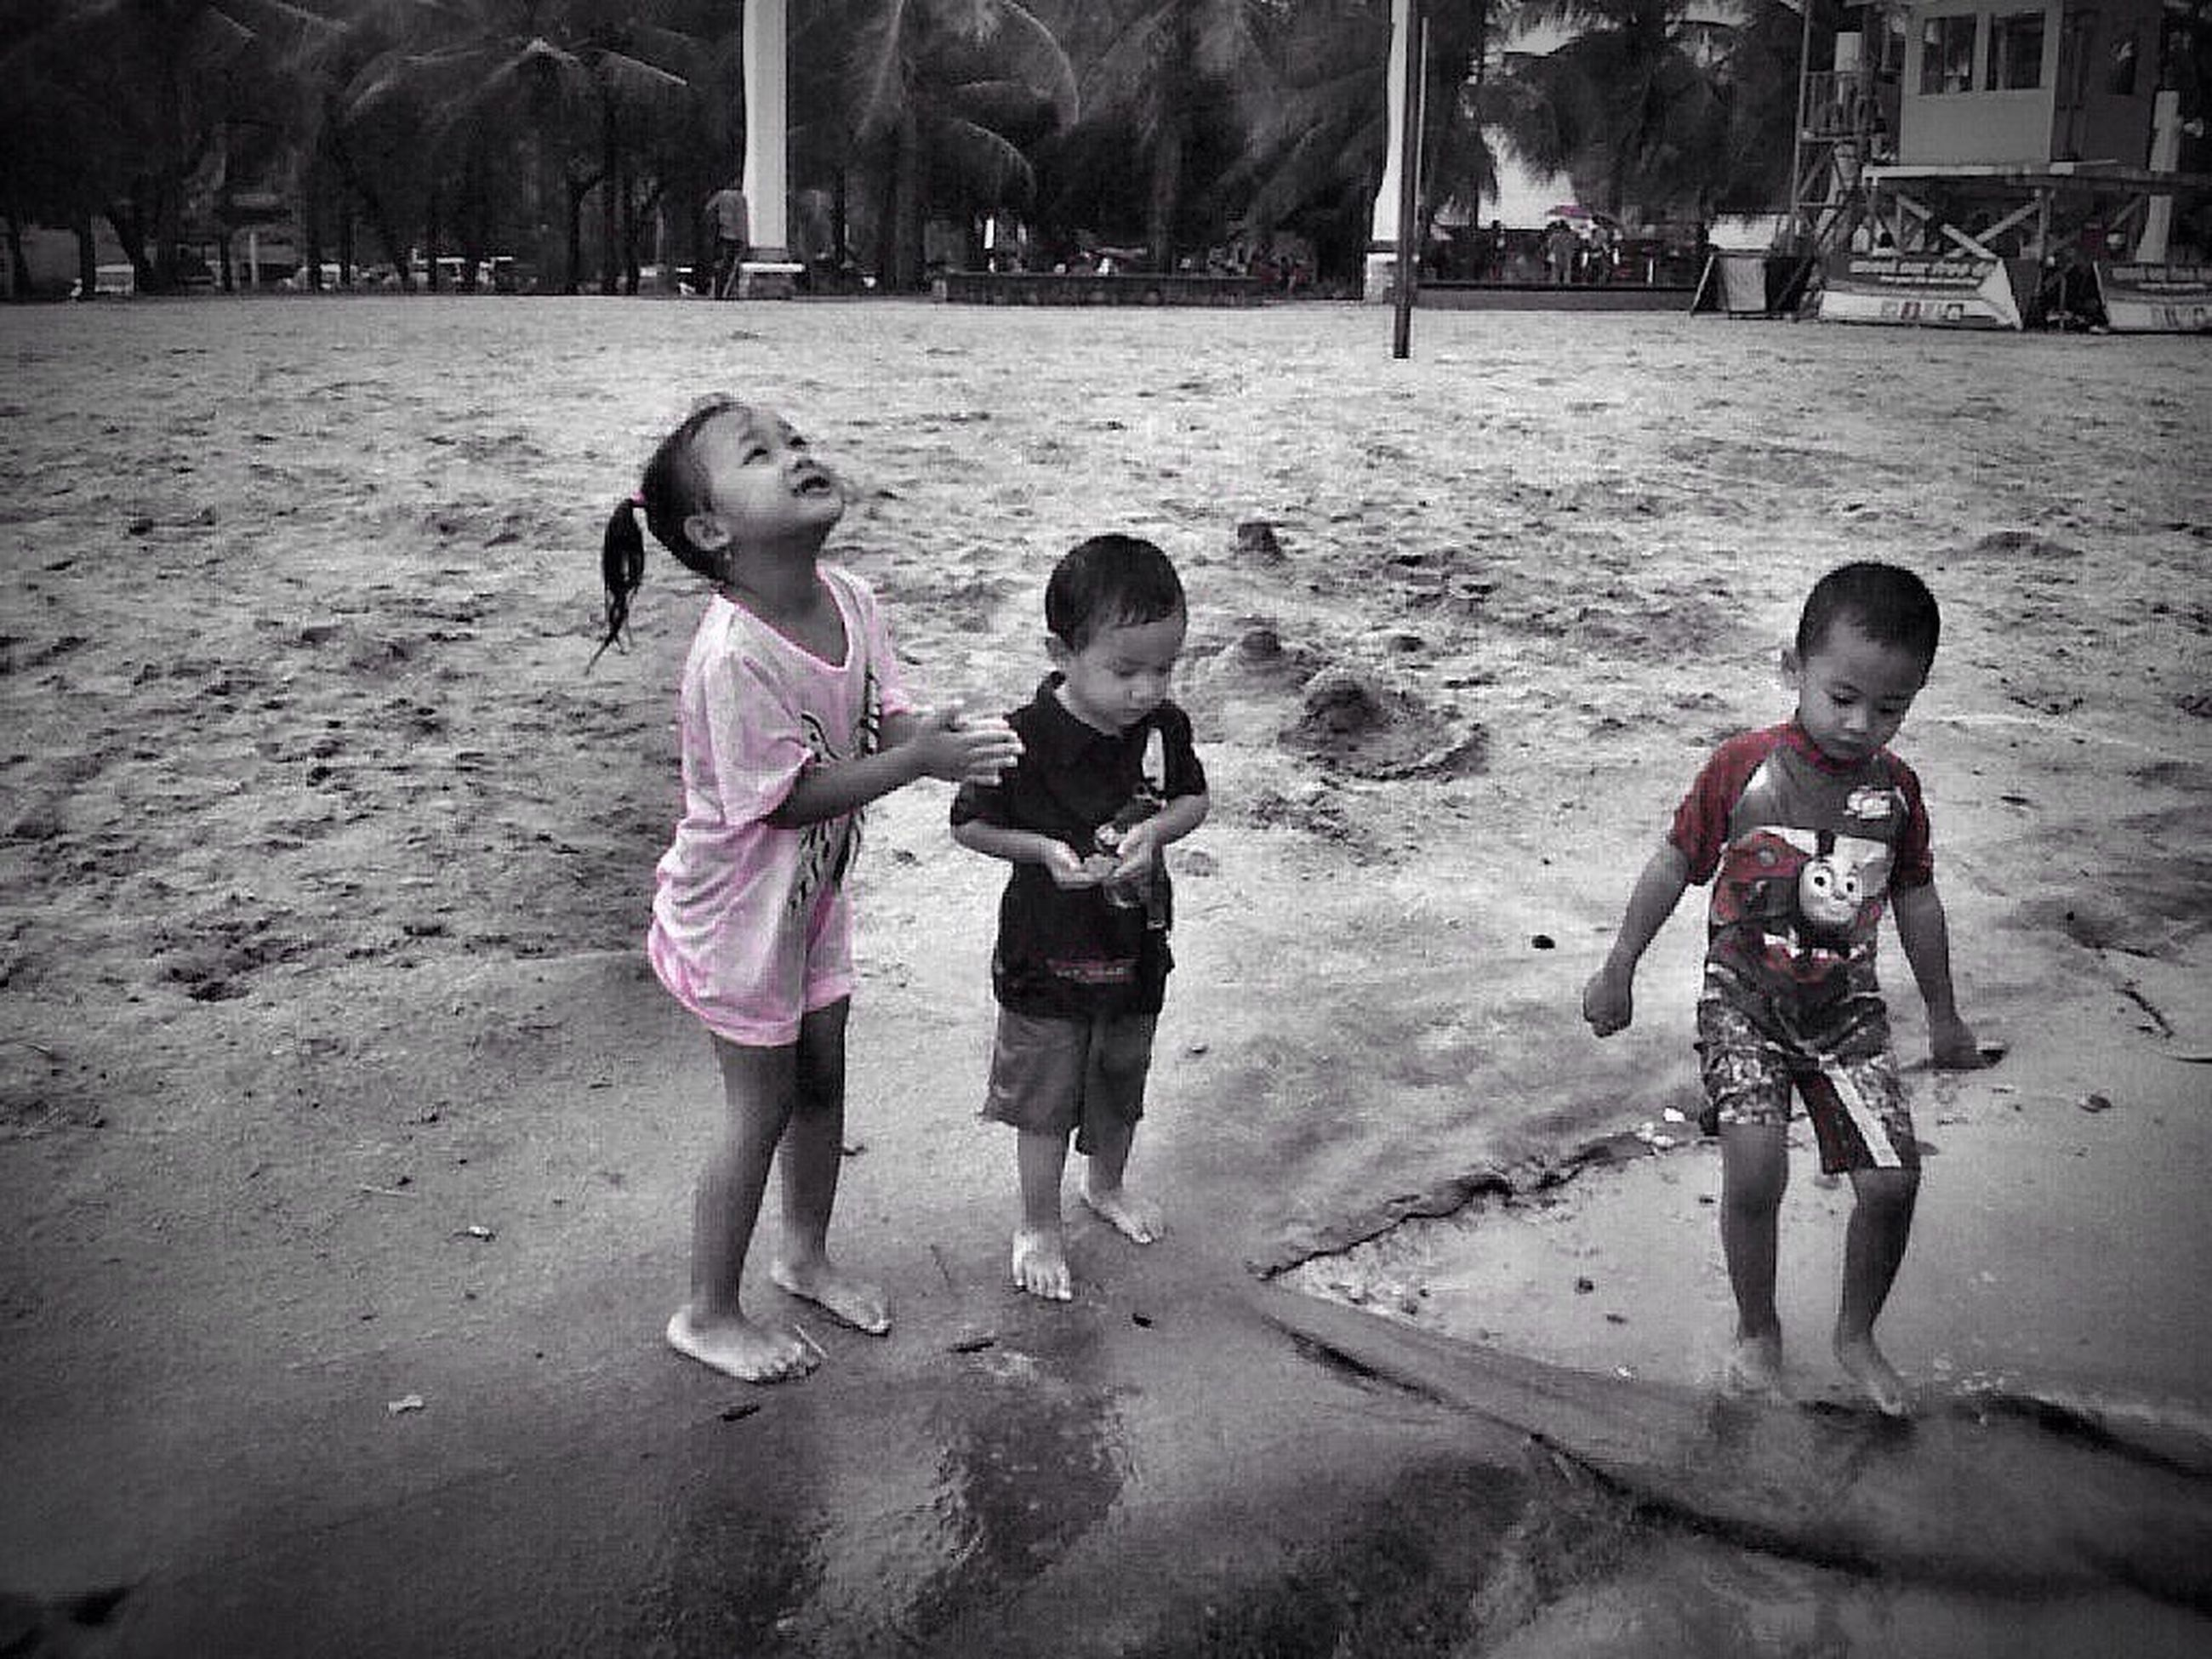 child, childhood, girls, playing, children only, full length, happiness, outdoors, people, water, day